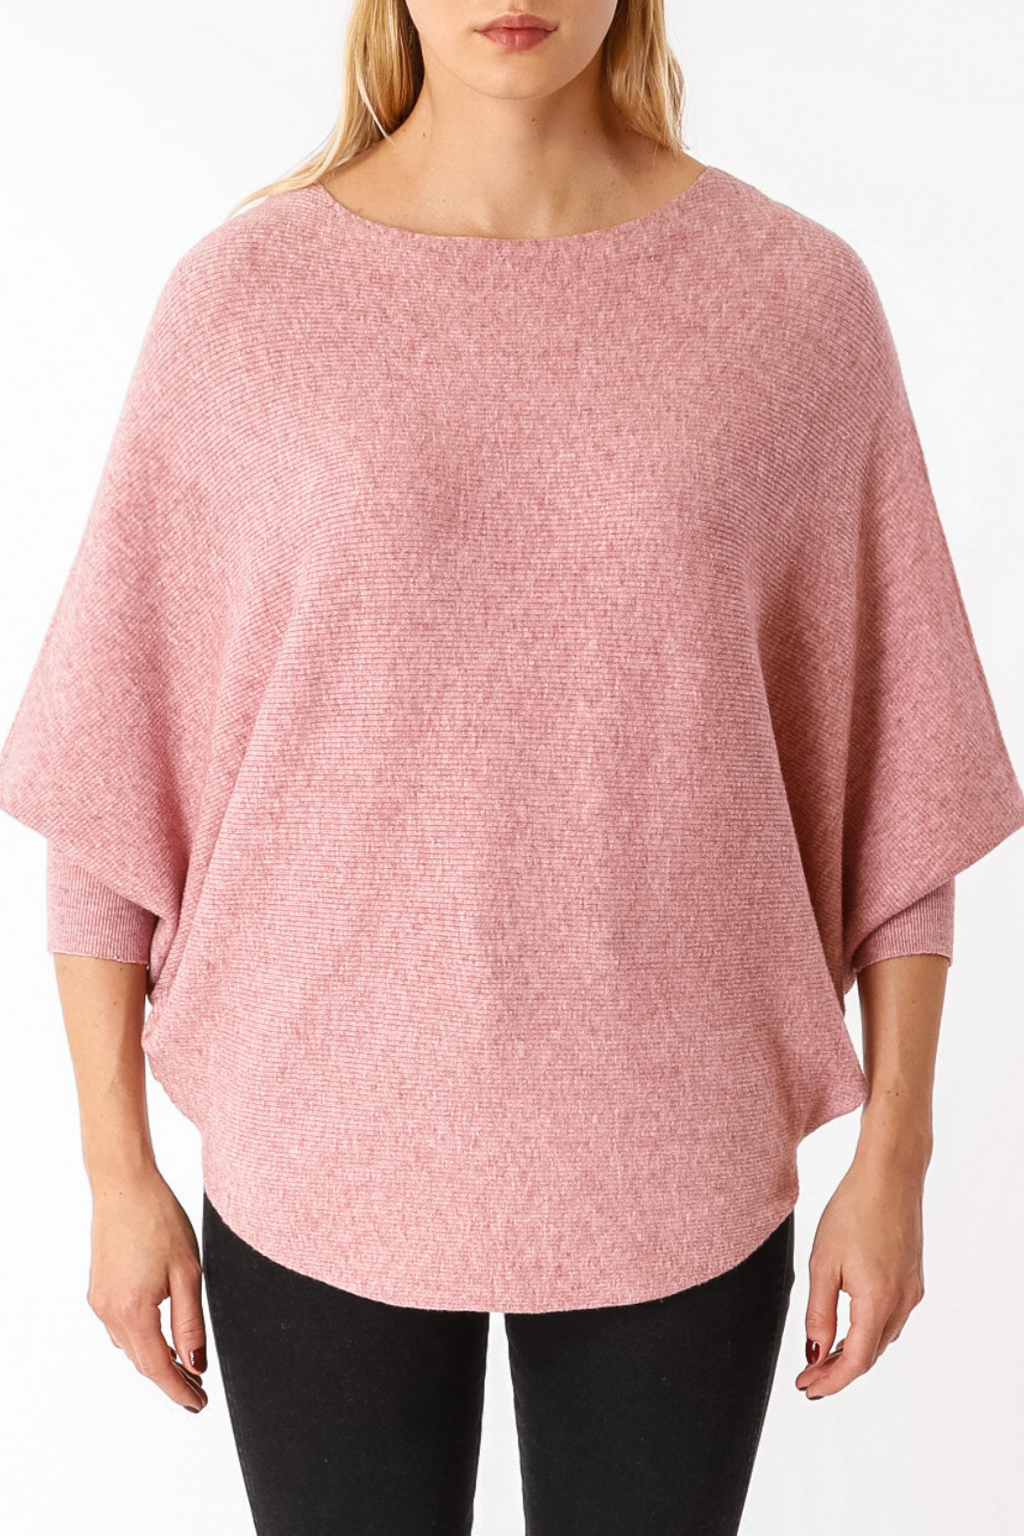 EcoVibe Brynn Sweater in Dusty Pink